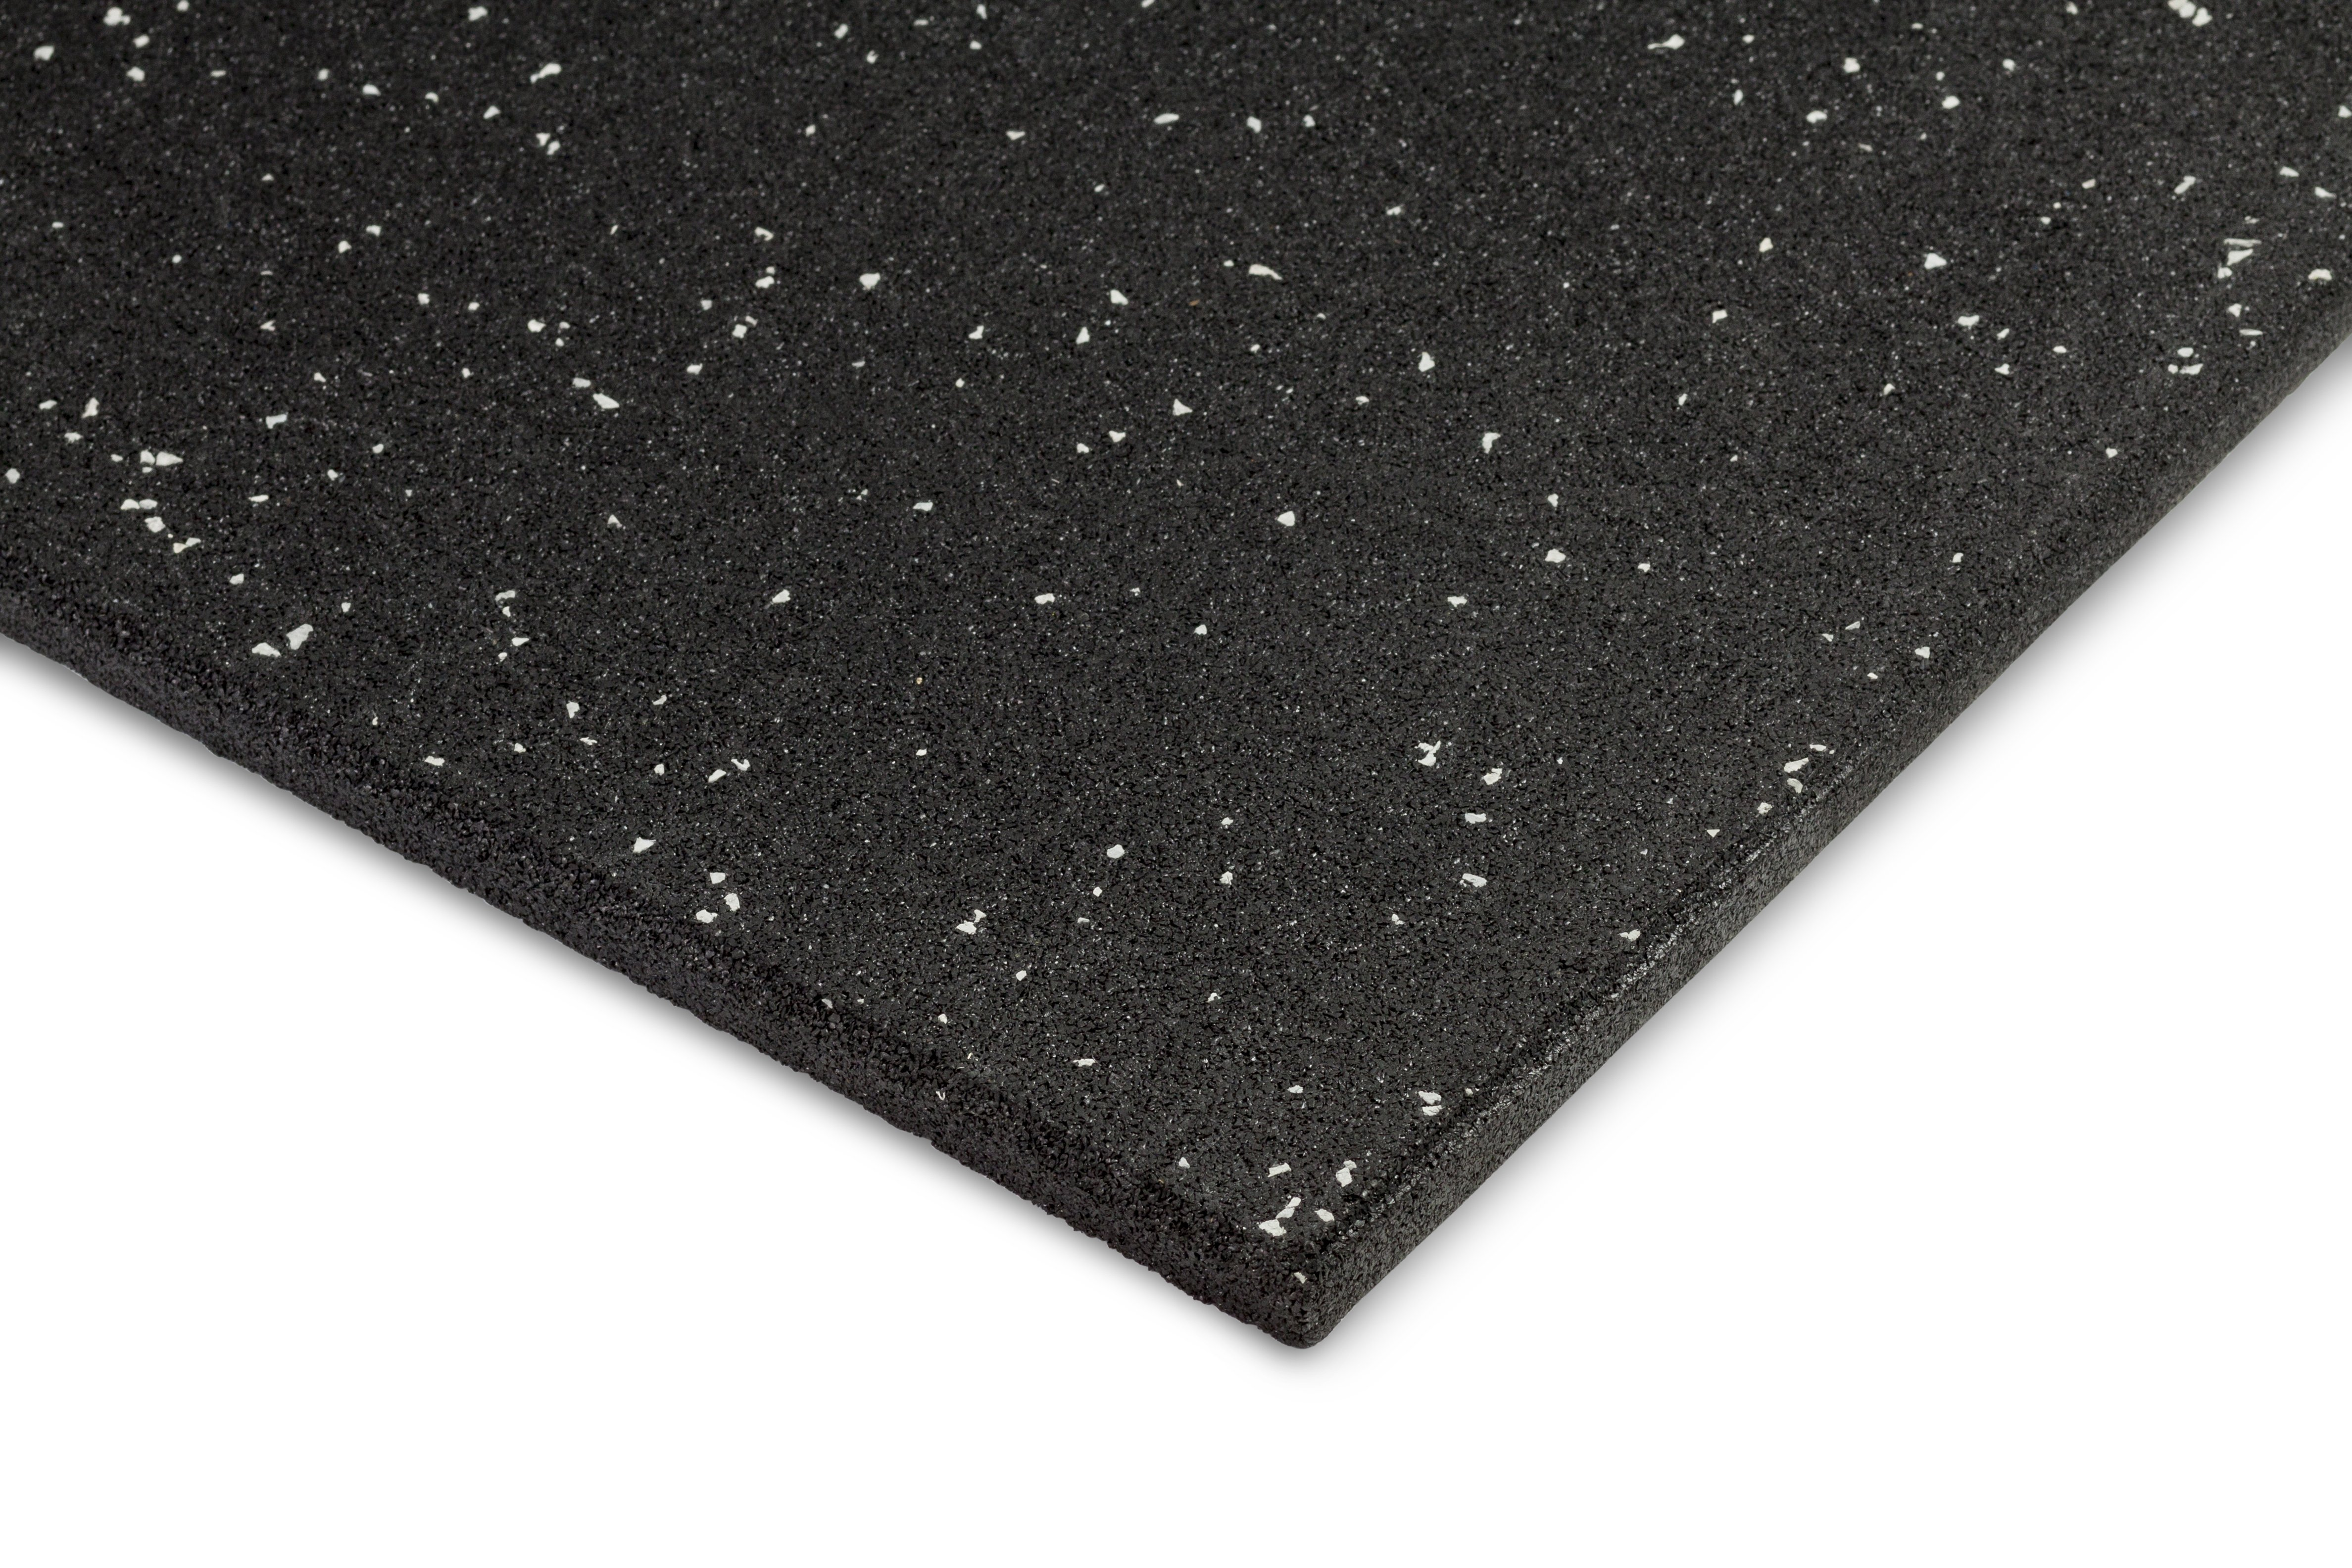 mat rubber for best installation ideas gym roll innovative floor flooring cheap mats sports ironcompany quality